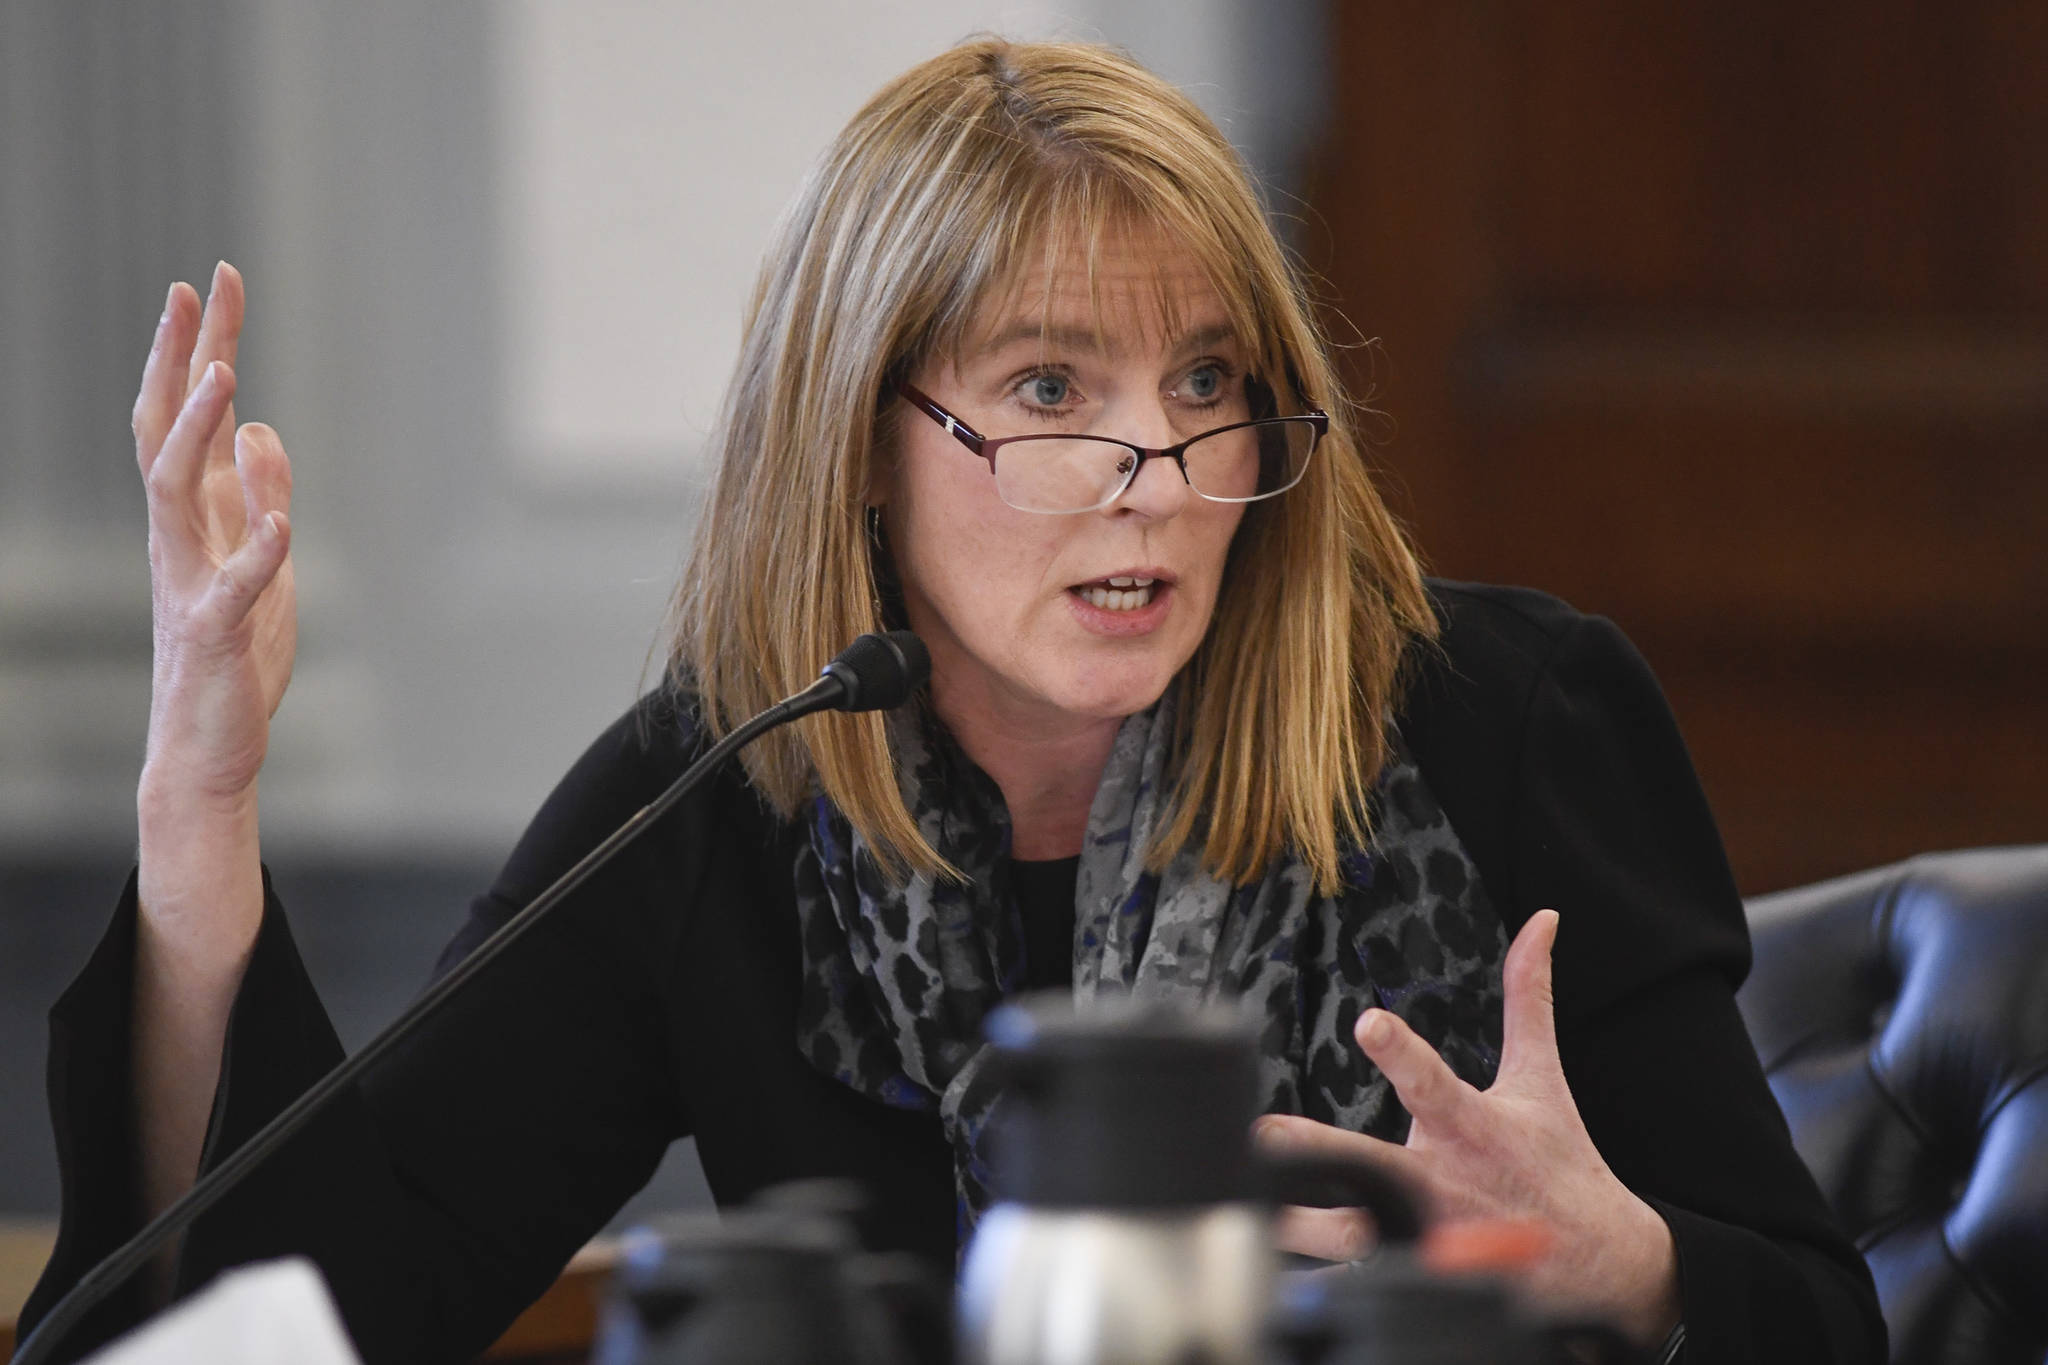 Sen. Natasha Von Imhof, R-Anchorage, pictured here on Feb. 18, 2019, asks why adult preventative care was targeted for elimination, saying she has heard from providers that this service often will bring people into a clinic where they can be asked if they have other medical needs. (Michael Penn | Juneau Empire File)